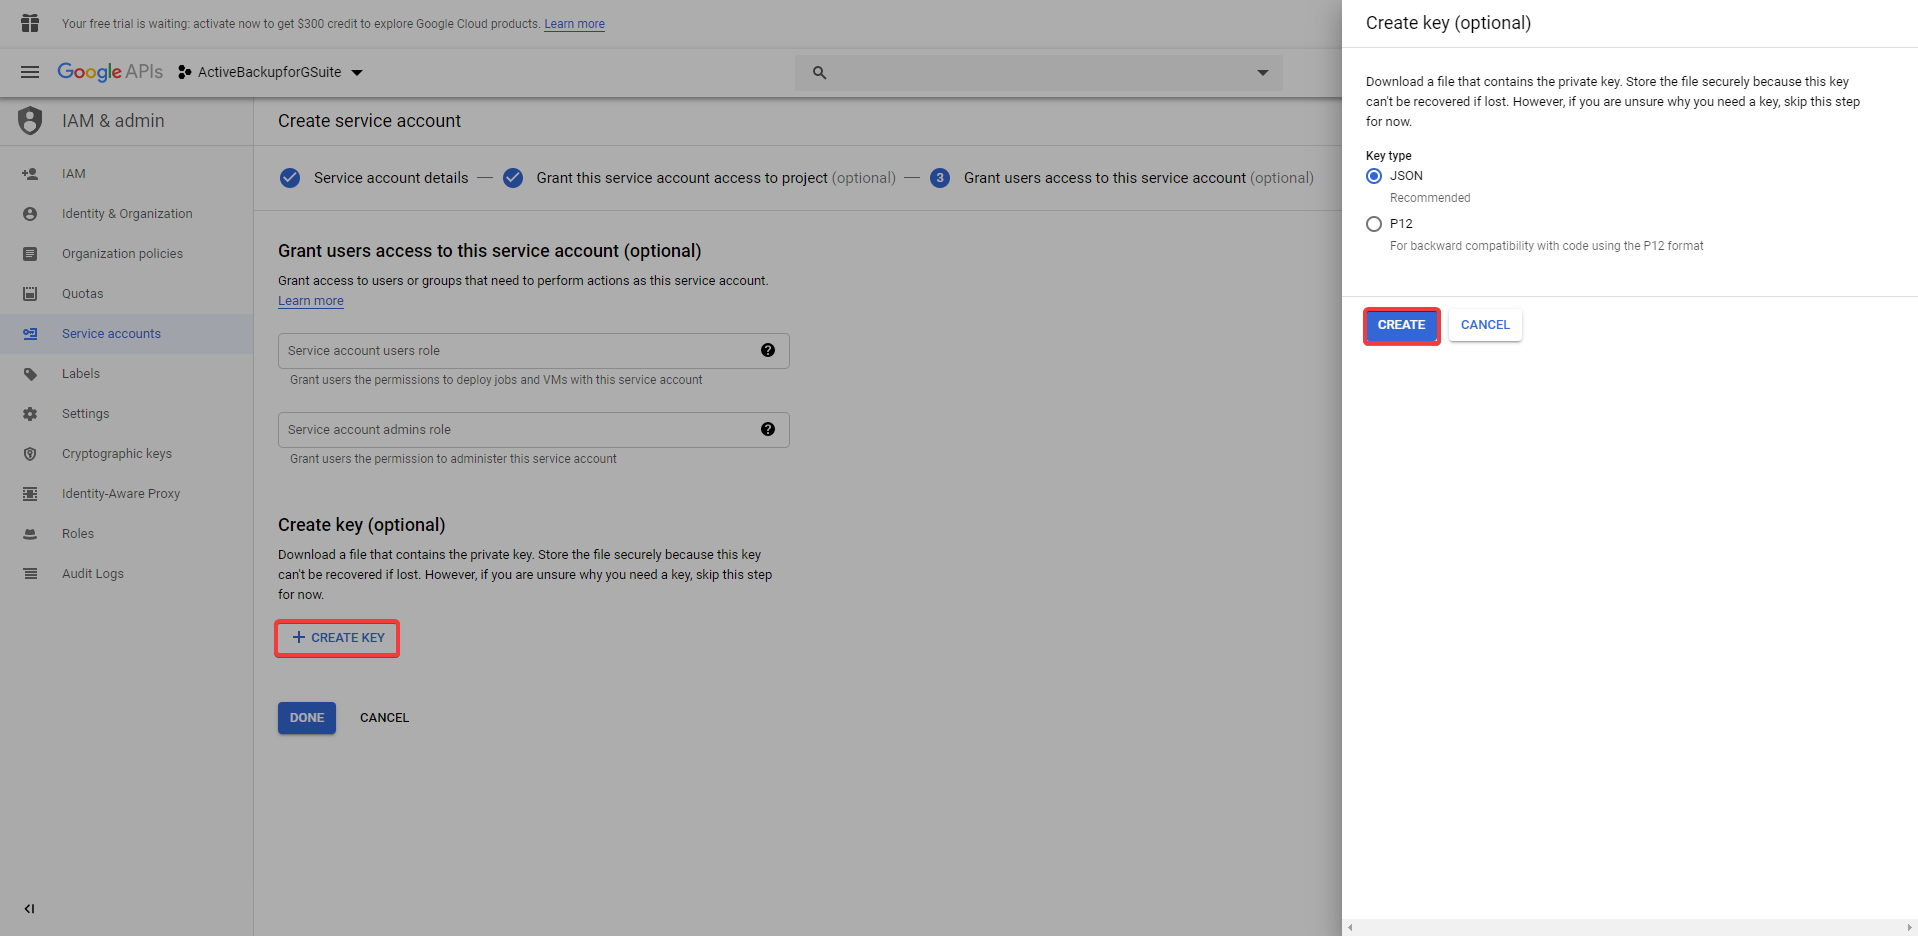 How to obtain authorization from Google for using Active Backup for